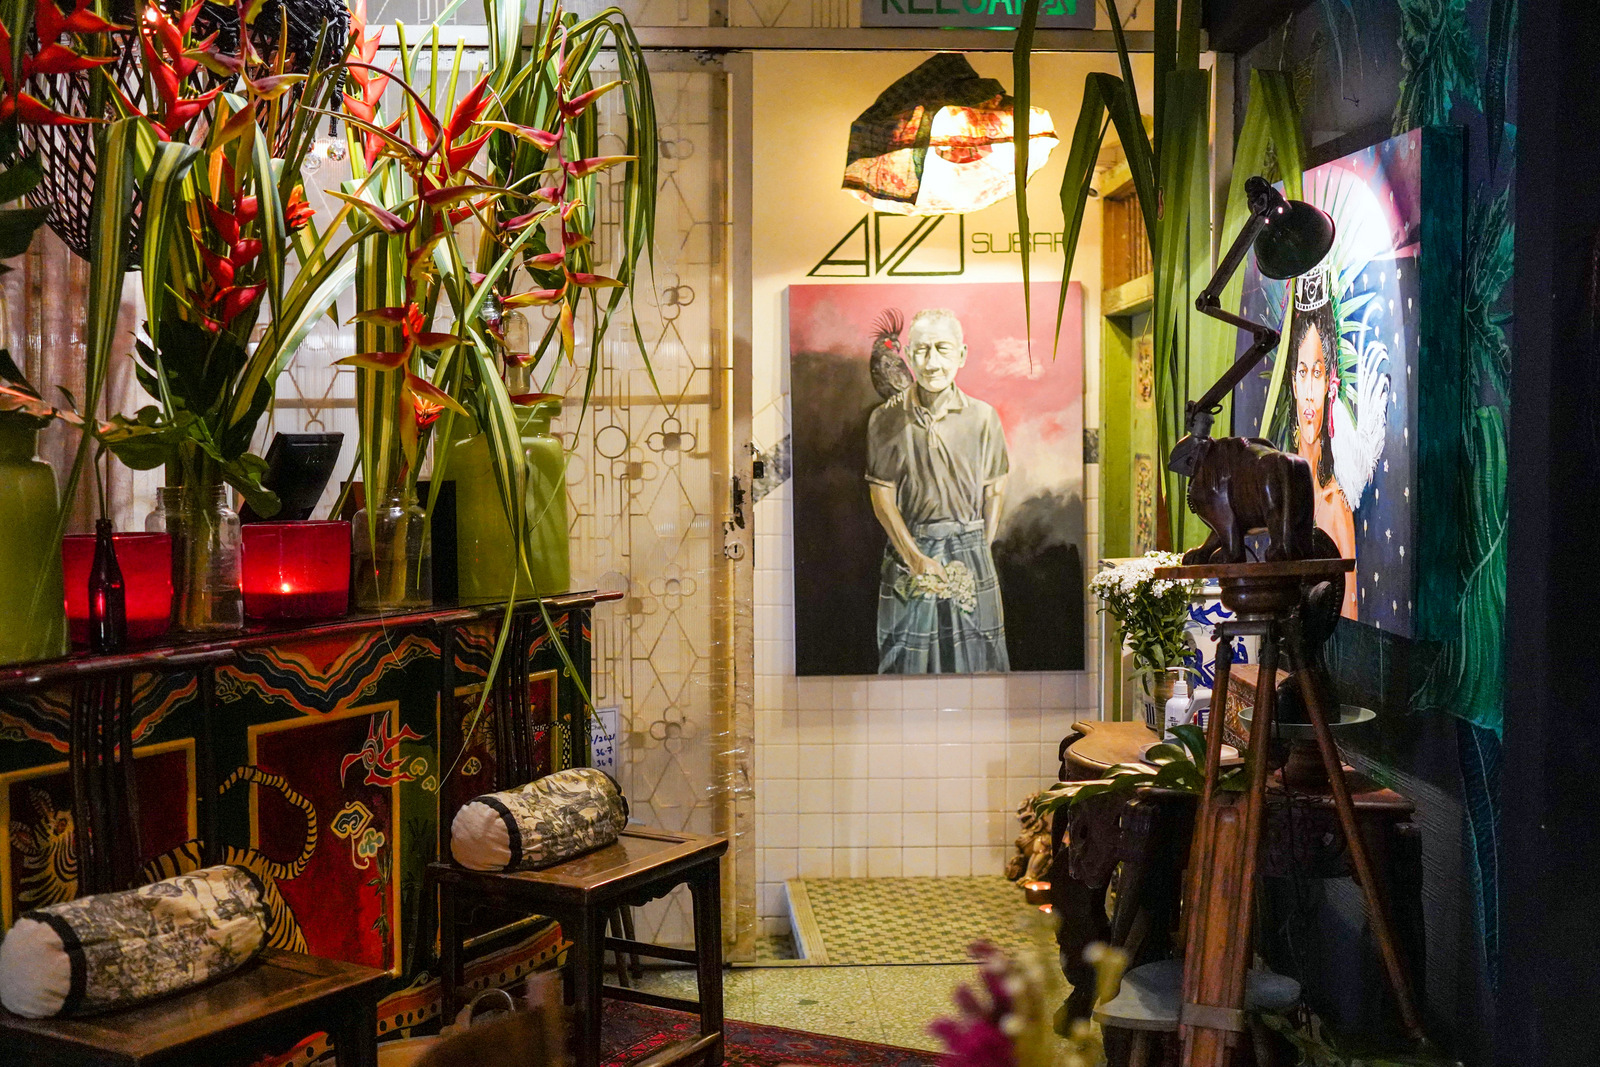 adu sugar restaurant, bangsar: a chef's life revealed in surreal portraits, on sumptuous plates